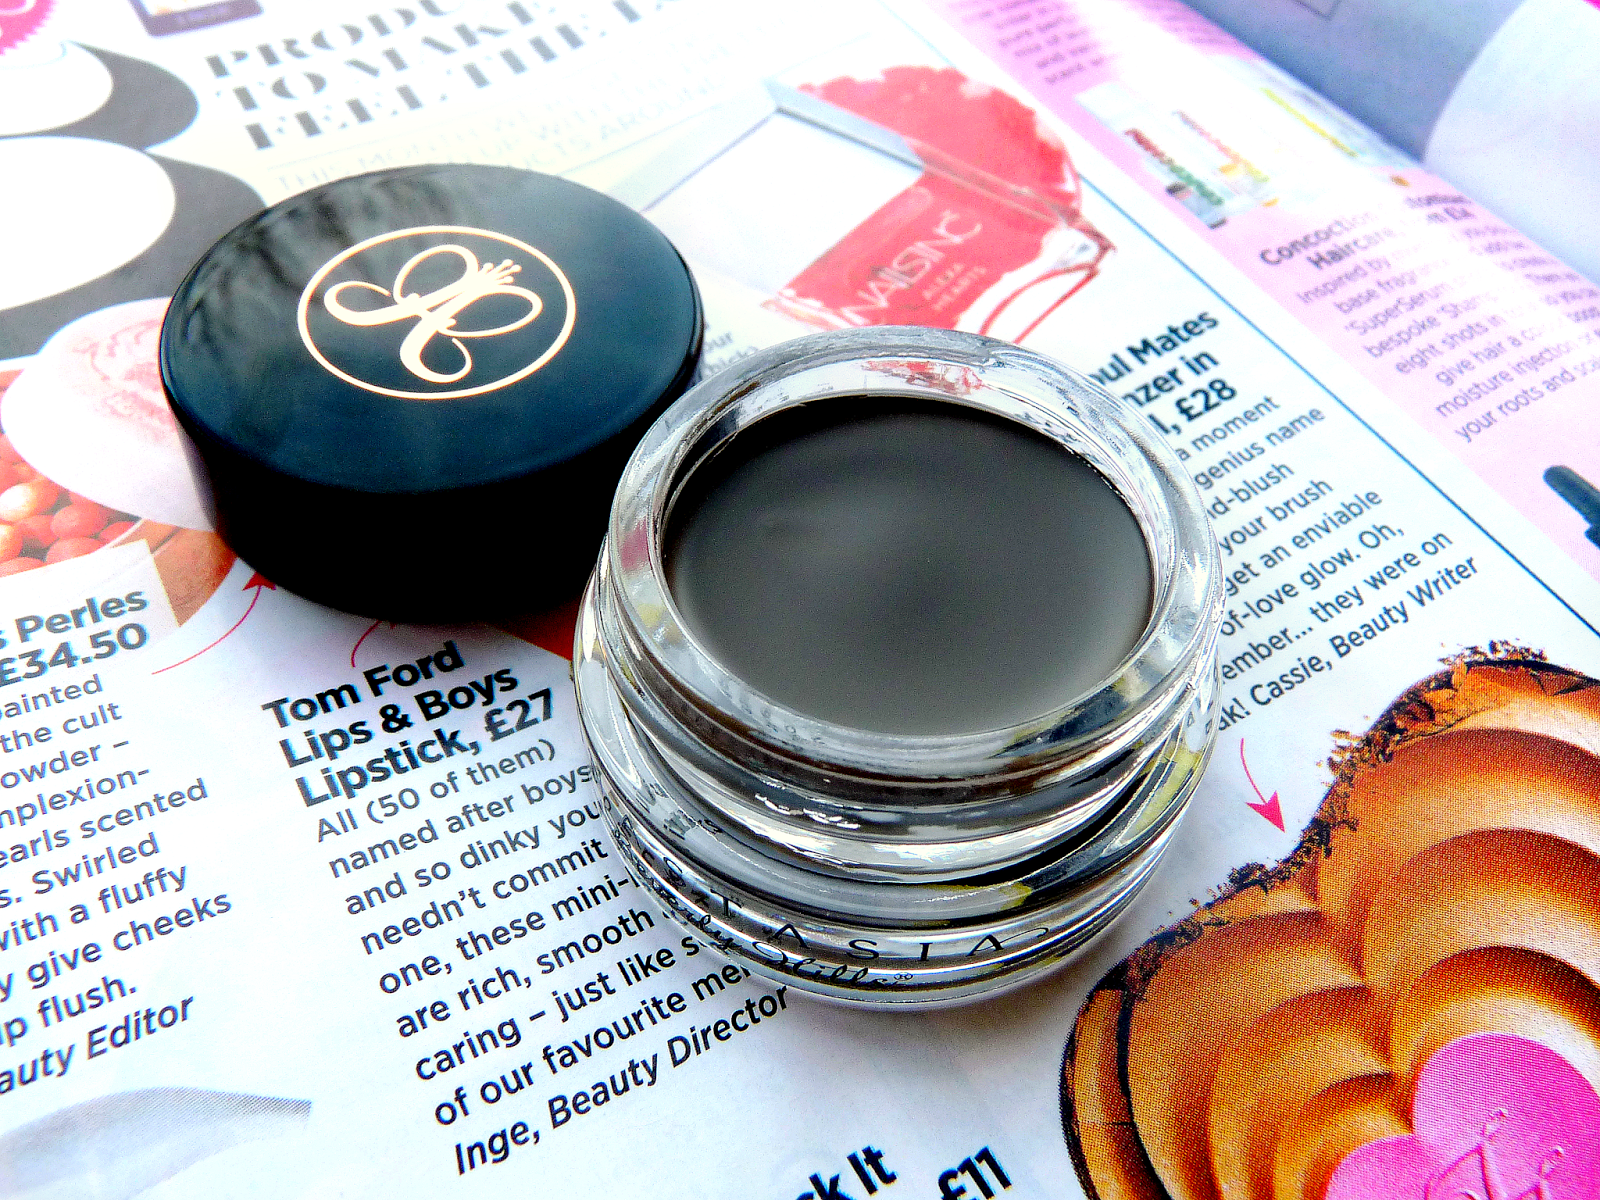 beauty, eyebrows, makeup, Anastasia Beverly Hills, Dipbrow Pomade, review, youwishyou, 2015, cosmetics, eyebrow, brow,